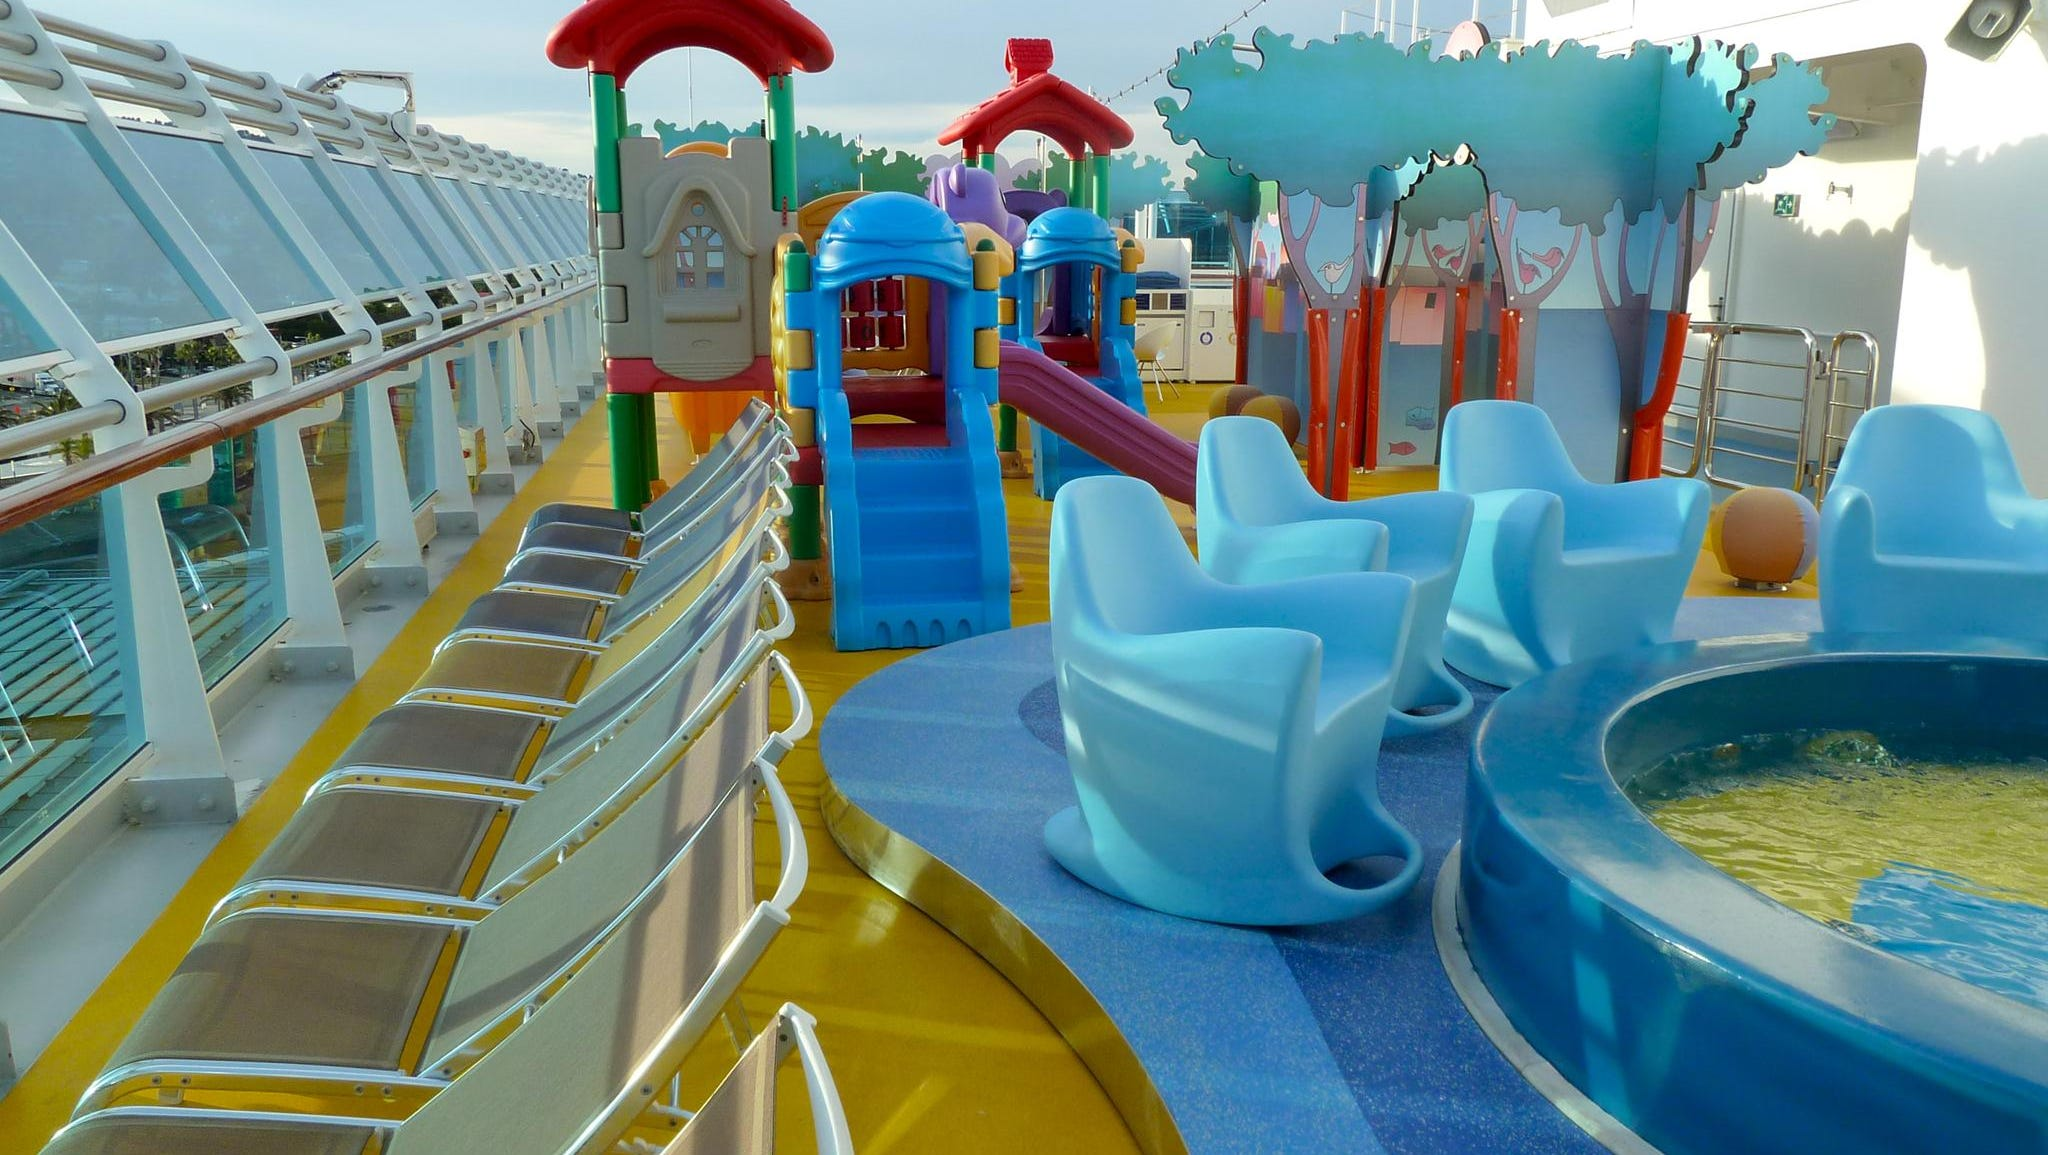 On the port side of Fuxia Deck, adjacent to the radio-mast housing, there is an outdoor space for children called Lido Squok, which has a wading pool and playground.